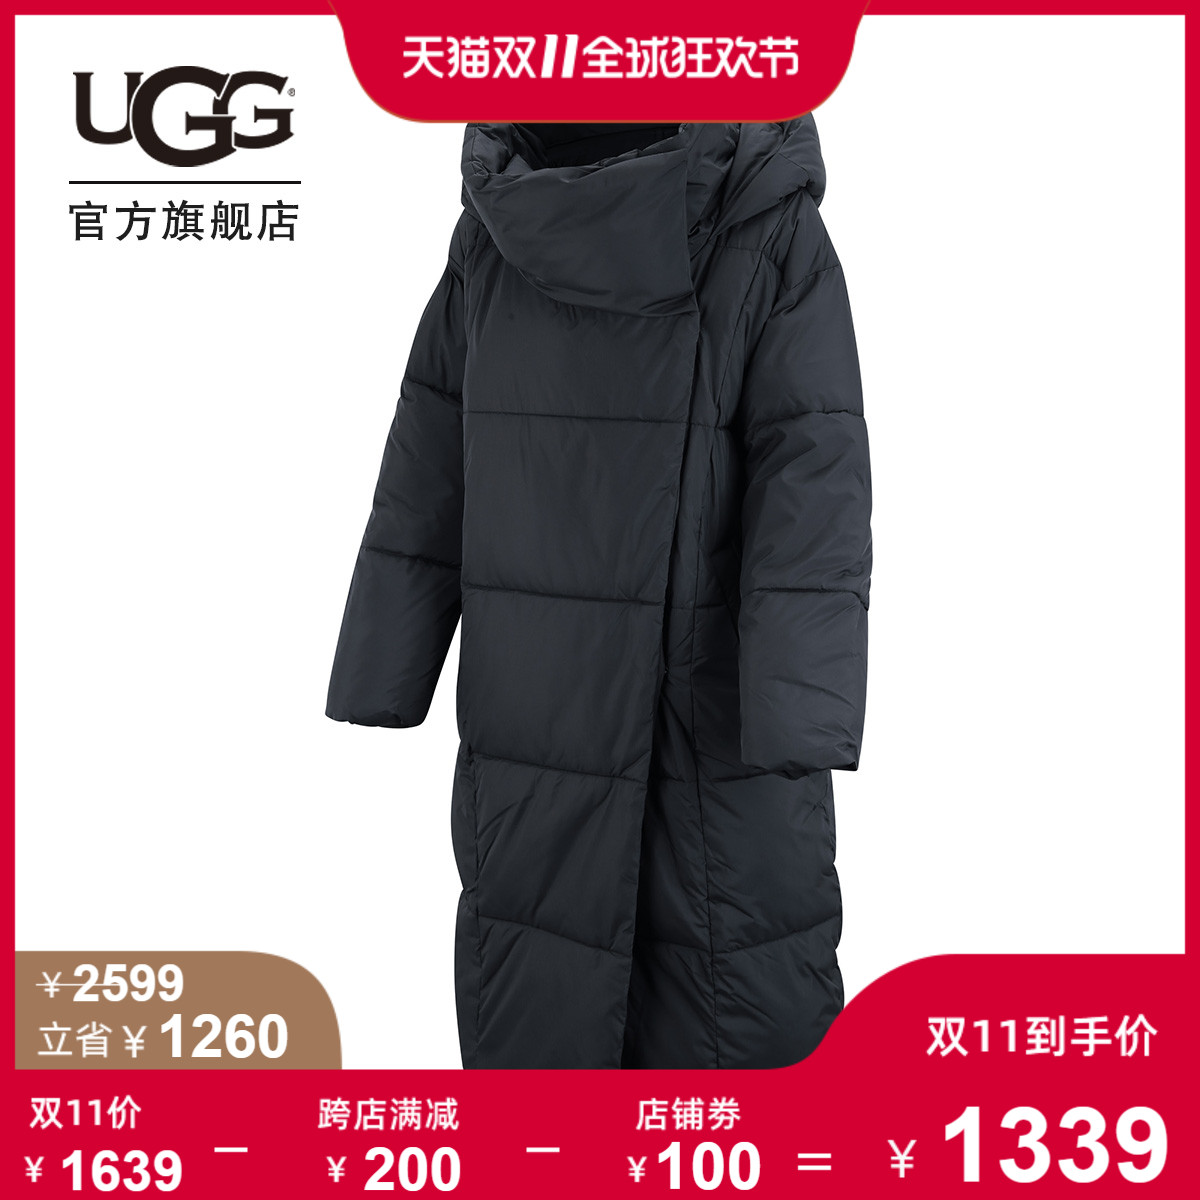 UGG2020 autumn winter new womens clothing Catherine cold cotton clothing 1104063